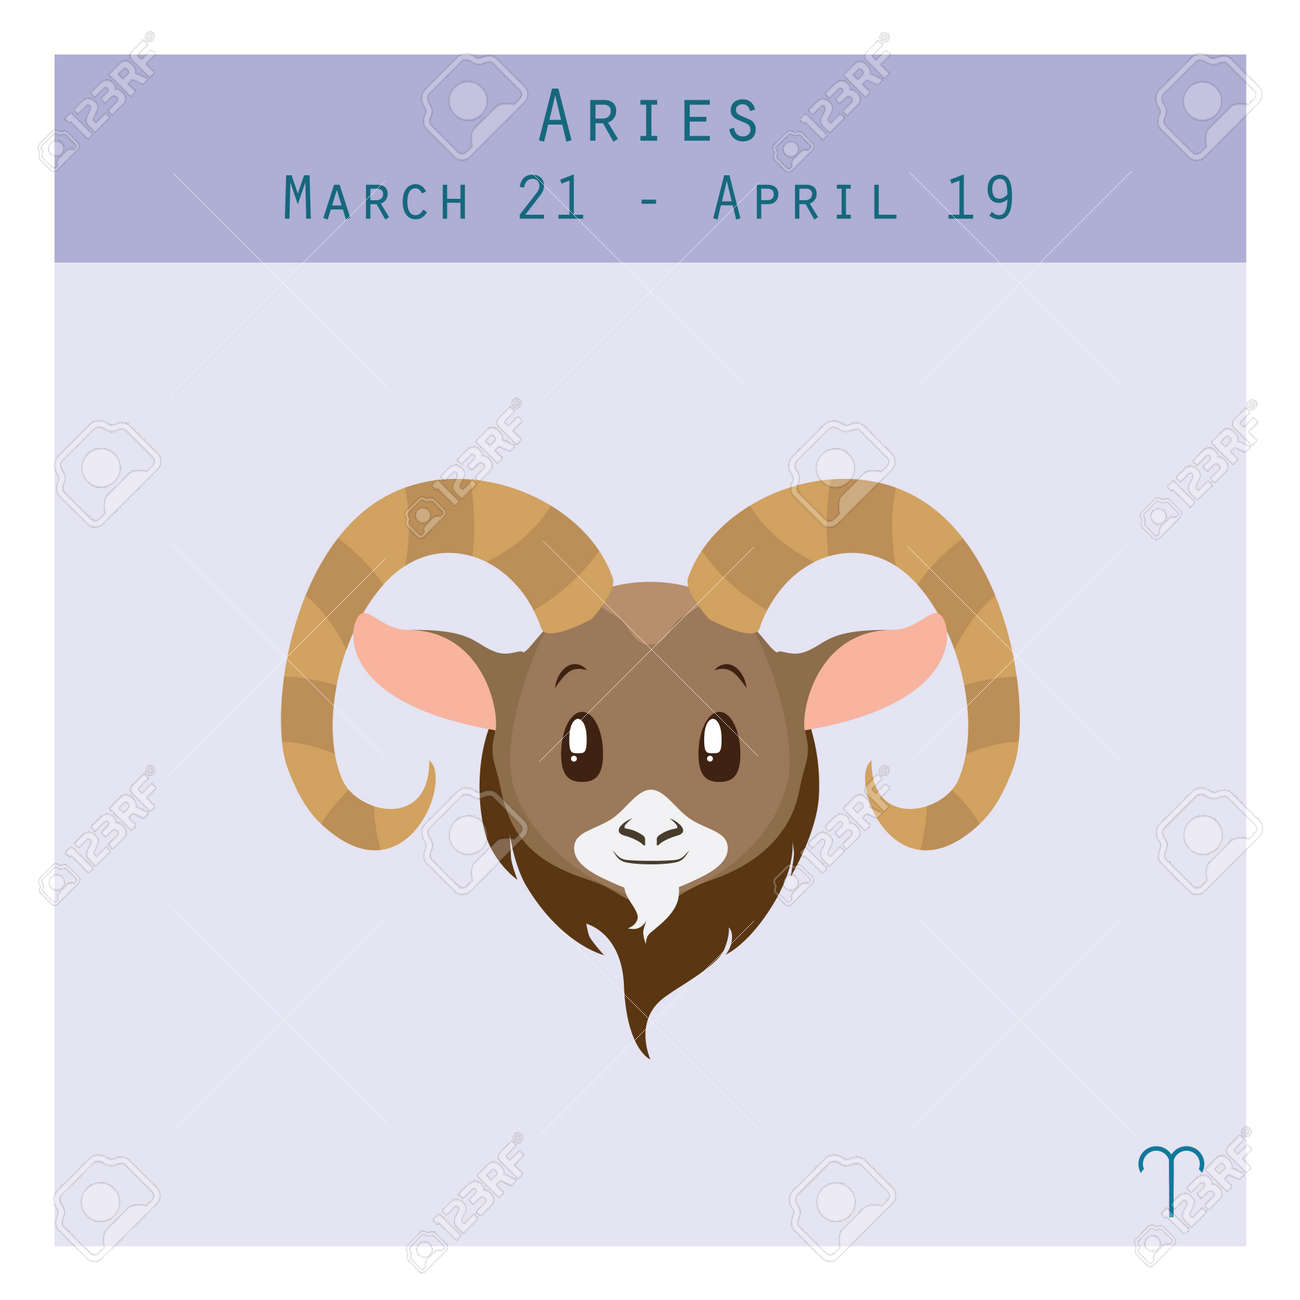 Cartoon aries zodiac sign with duration and symbol in lower corner cartoon aries zodiac sign with duration and symbol in lower corner stock vector 61146056 biocorpaavc Gallery